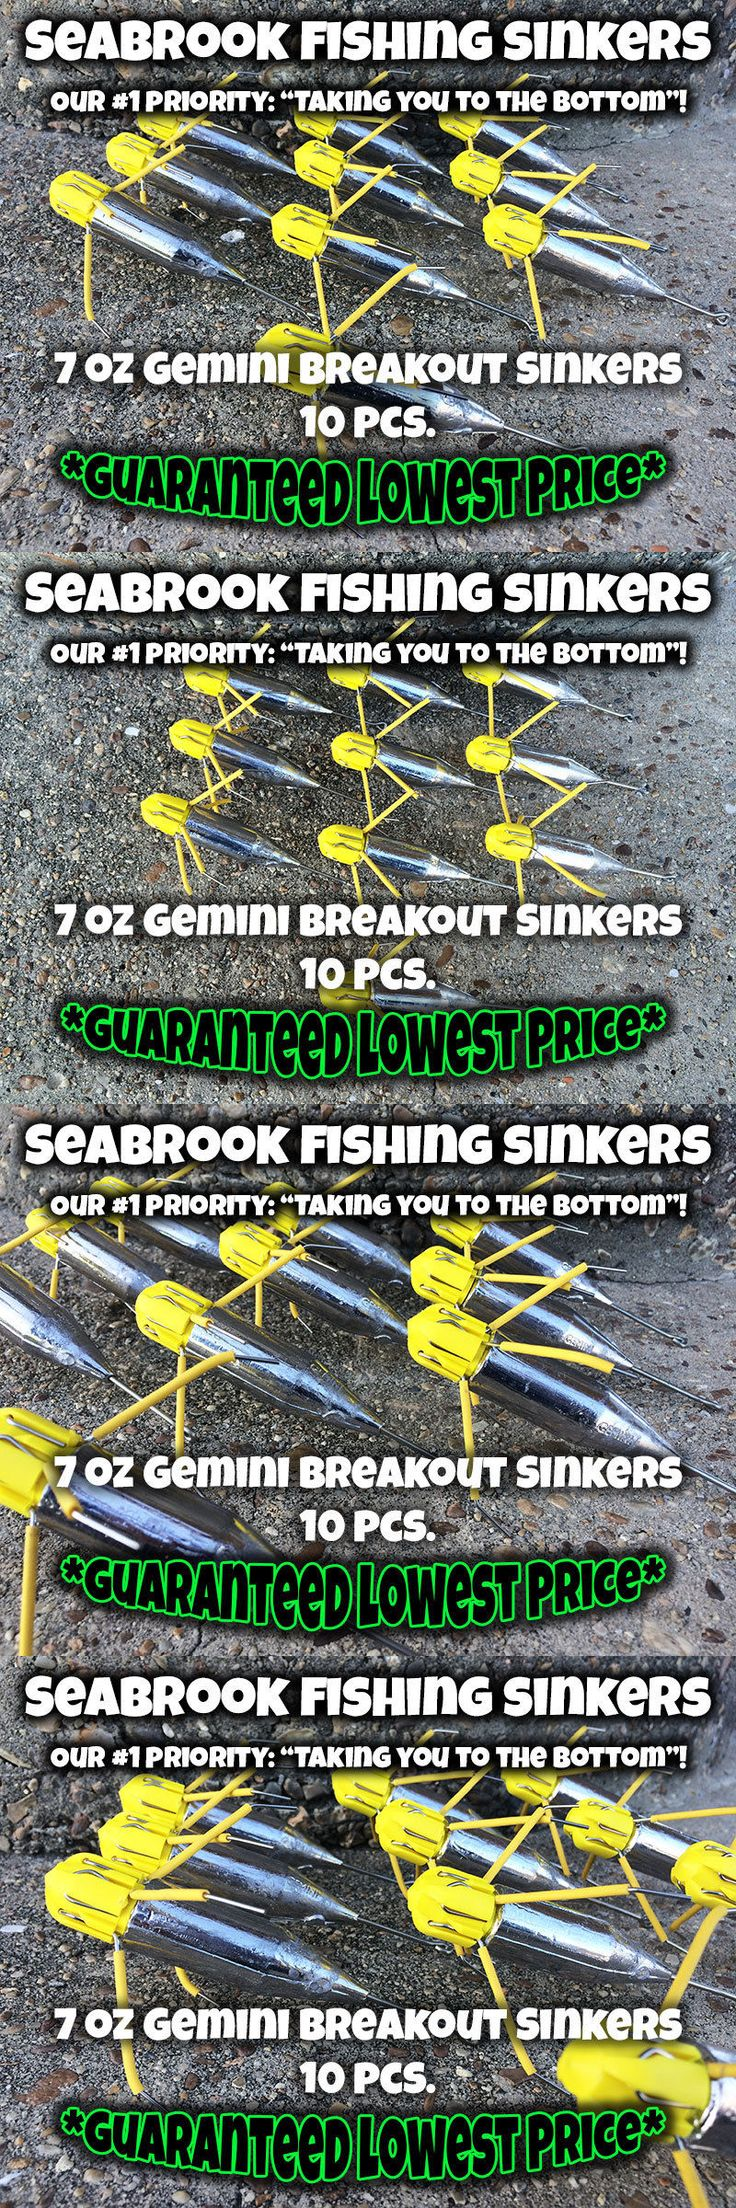 Sinkers and Weights 161826: 7 Oz - 10 Pcs | Gemini Breakout Sinkers | Surf Sputnik Sinker Spider Weights -> BUY IT NOW ONLY: $33.99 on eBay!